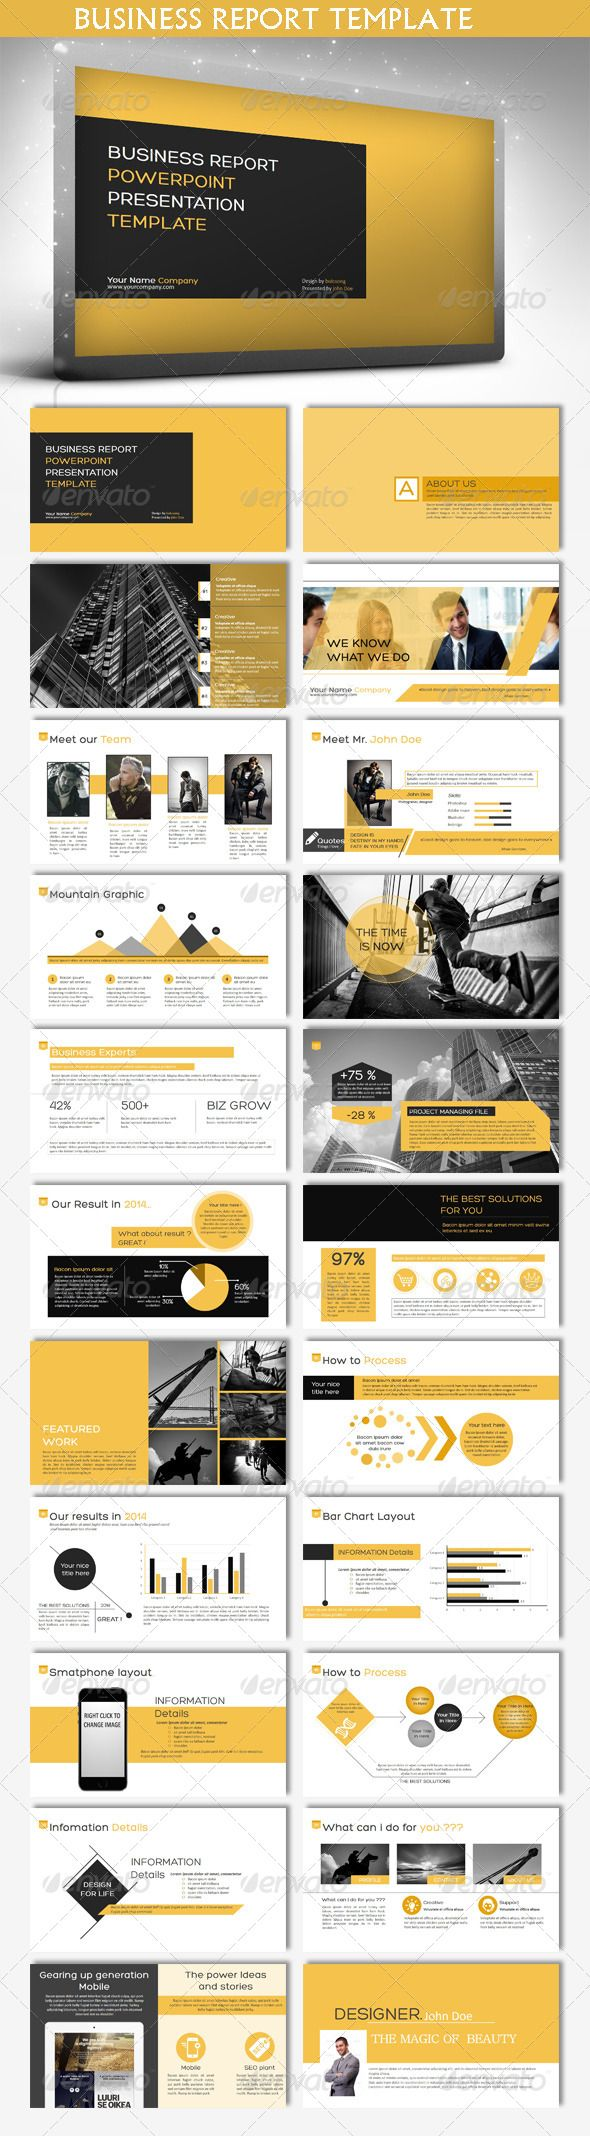 57 best powerpoint images on pinterest editorial design page business report powerpoint template powerpoint templates powerpoint powerpointtemplate presentation toneelgroepblik Image collections